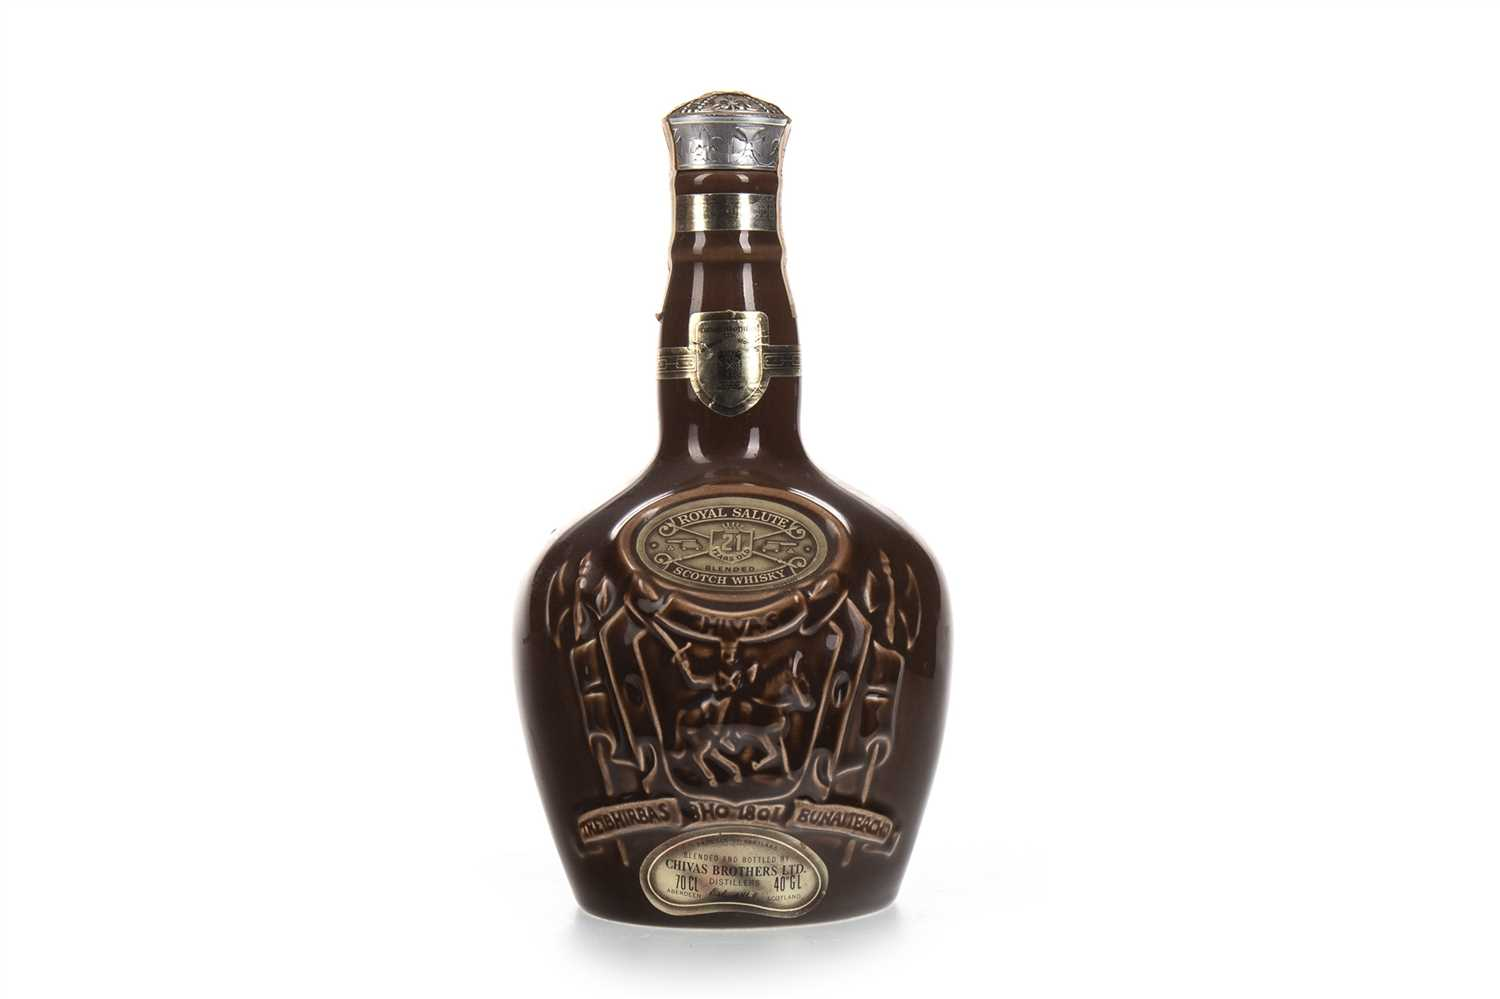 Lot 417-CHIVAS REGAL ROYAL SALUTE 21 YEARS OLD - BROWN FLAGON